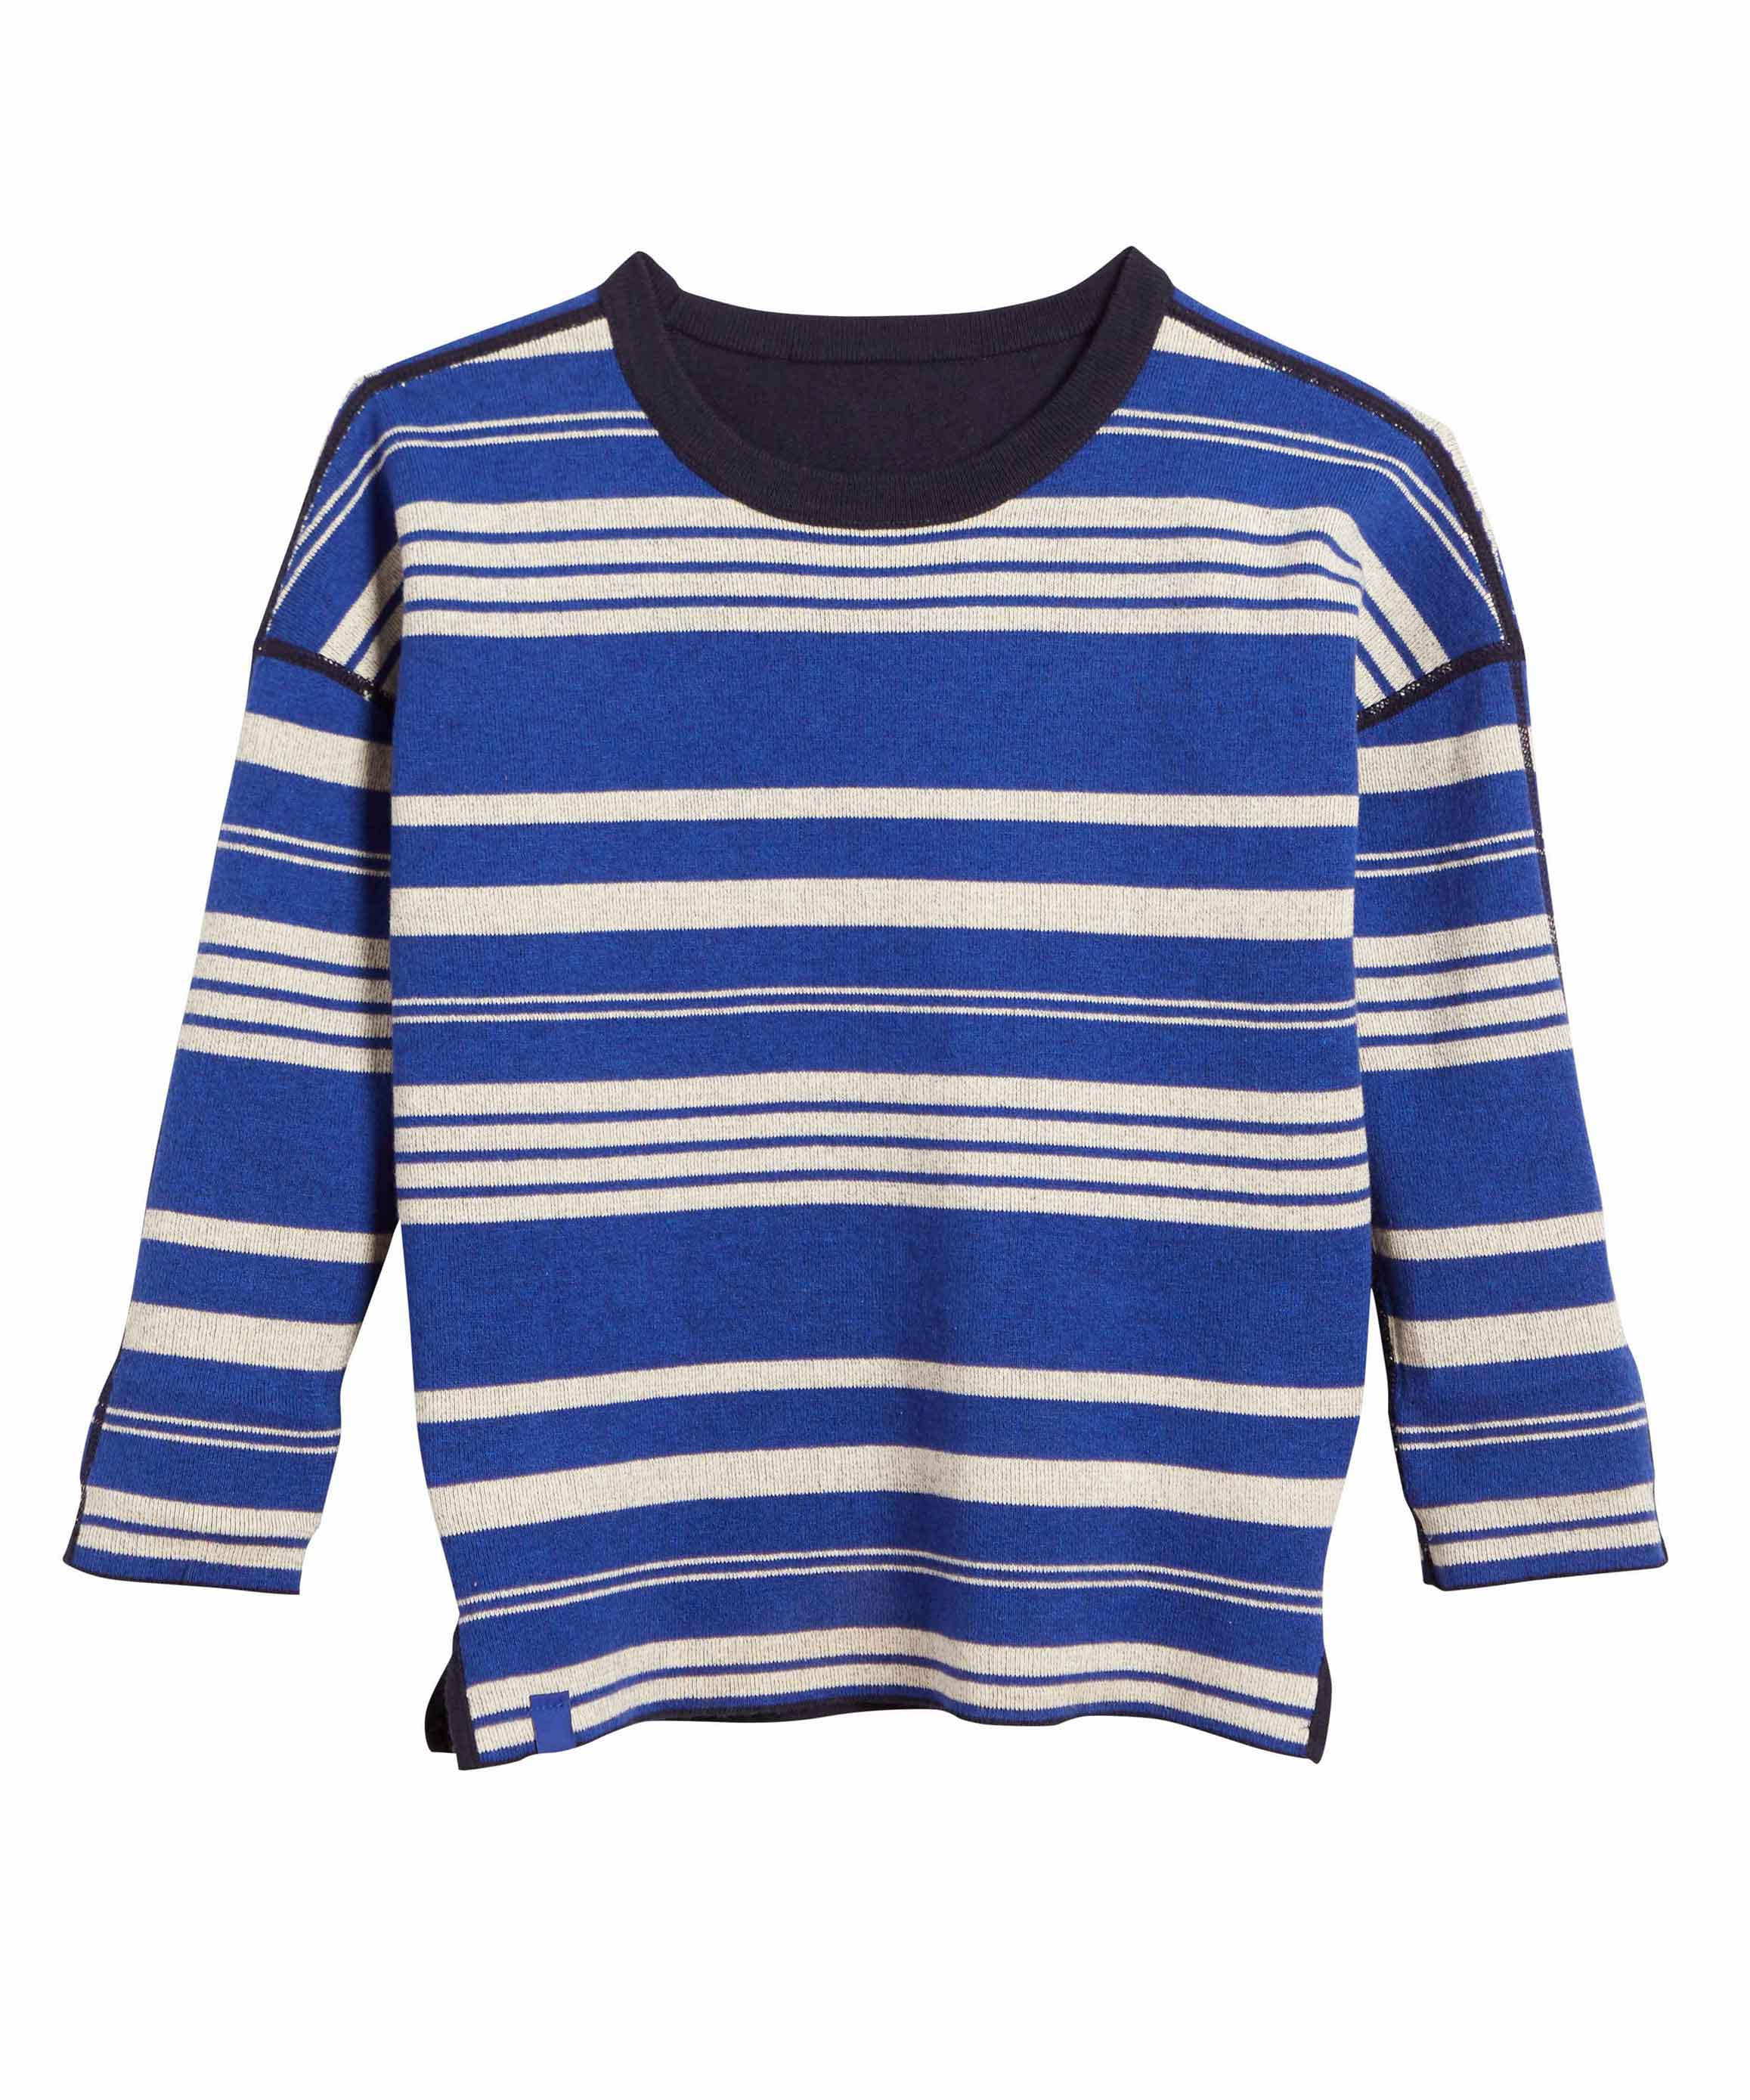 Scotch & Soda Reversible Pullover